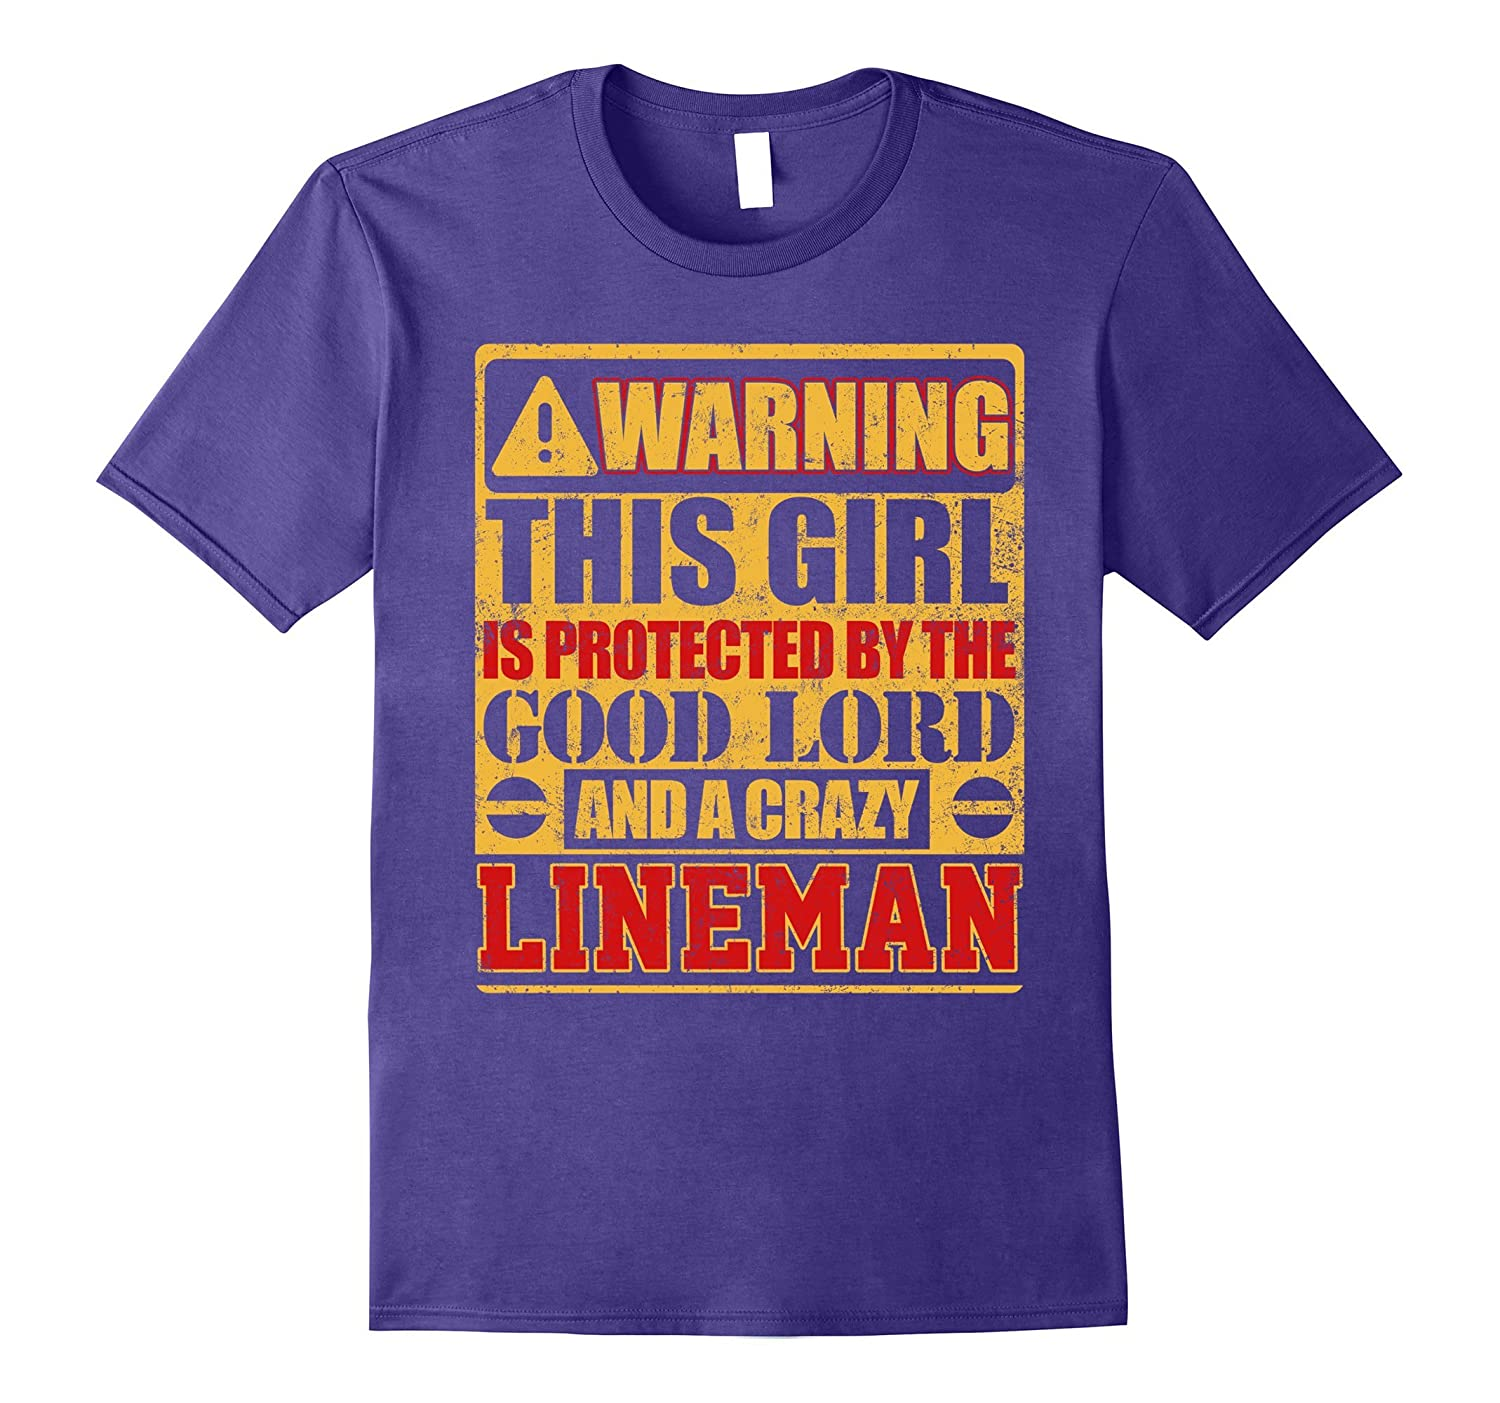 Warning This Girl Is Protected By Lineman T-shirt